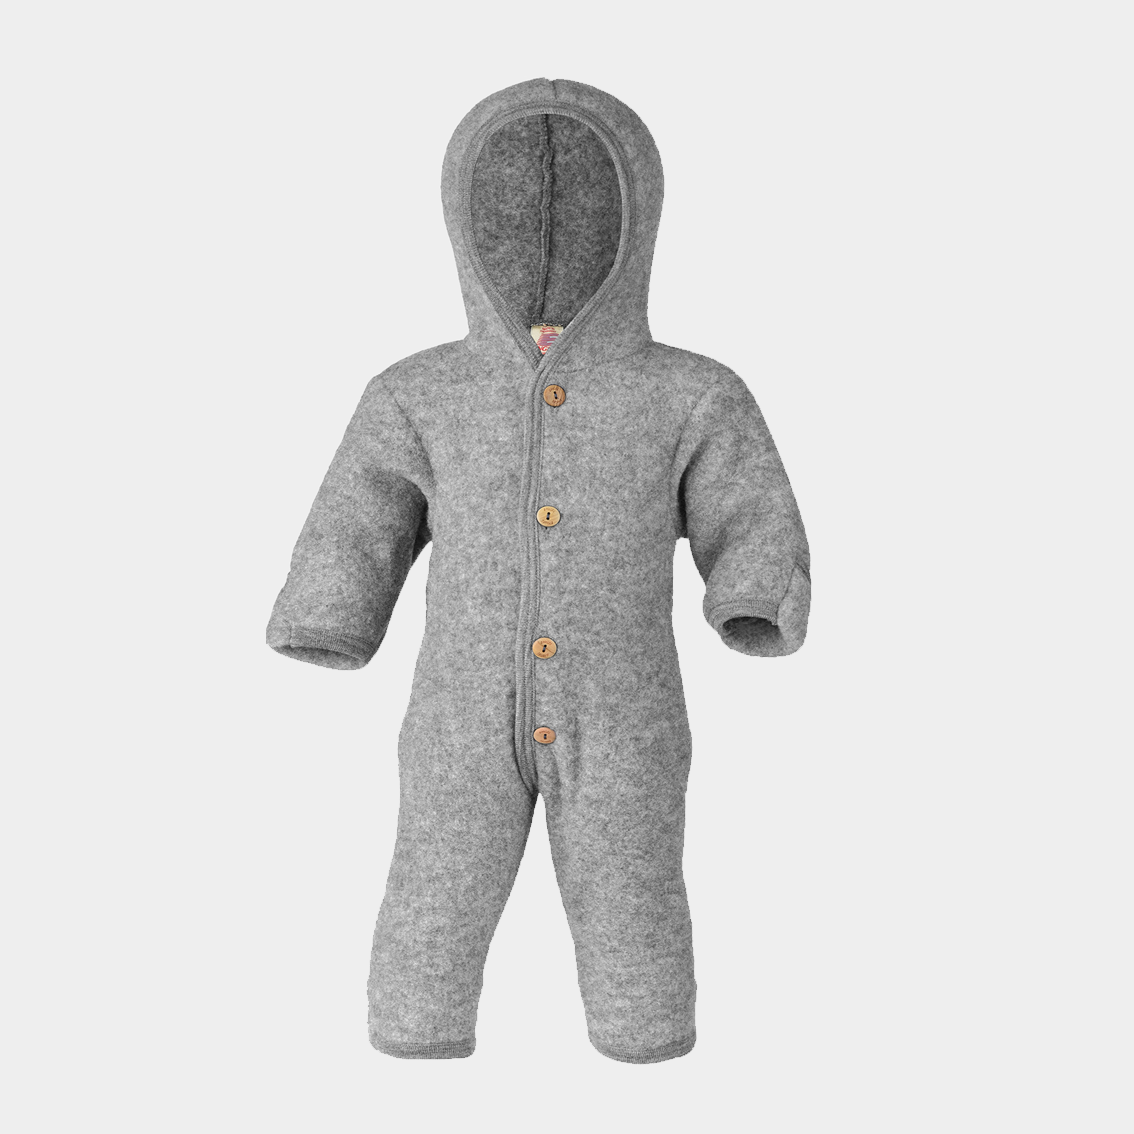 Image of Engel Hooded Overall Gray